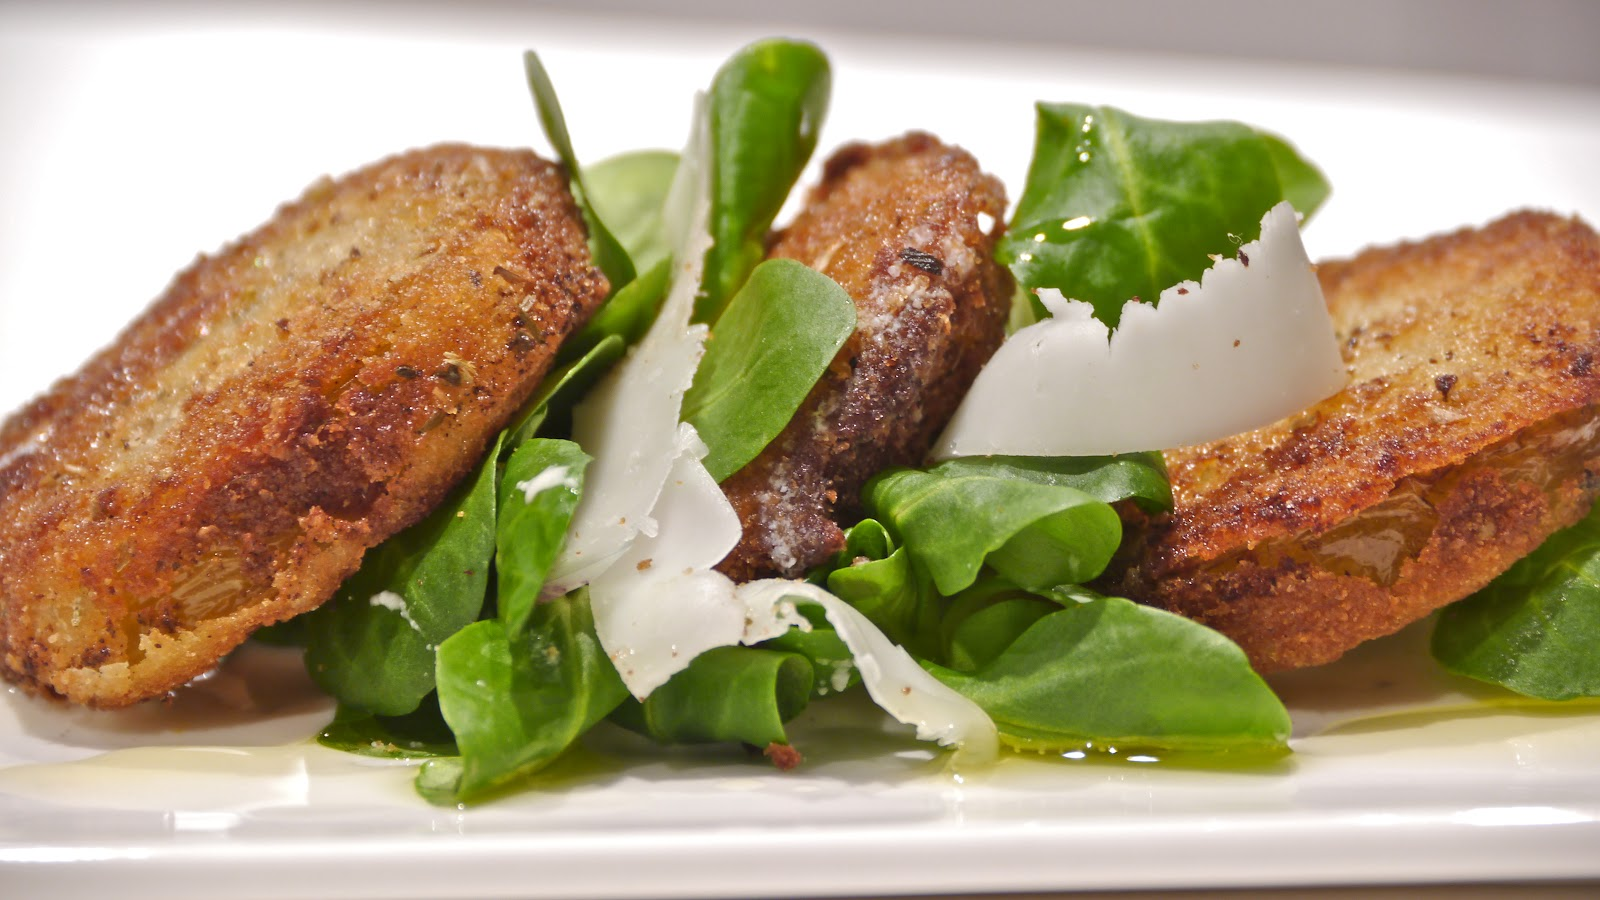 fried green tomato essay The fried green tomatoes is one of the most popular assignments among students' documents if you are stuck with writing or missing ideas, scroll down and find inspiration in the best samples.